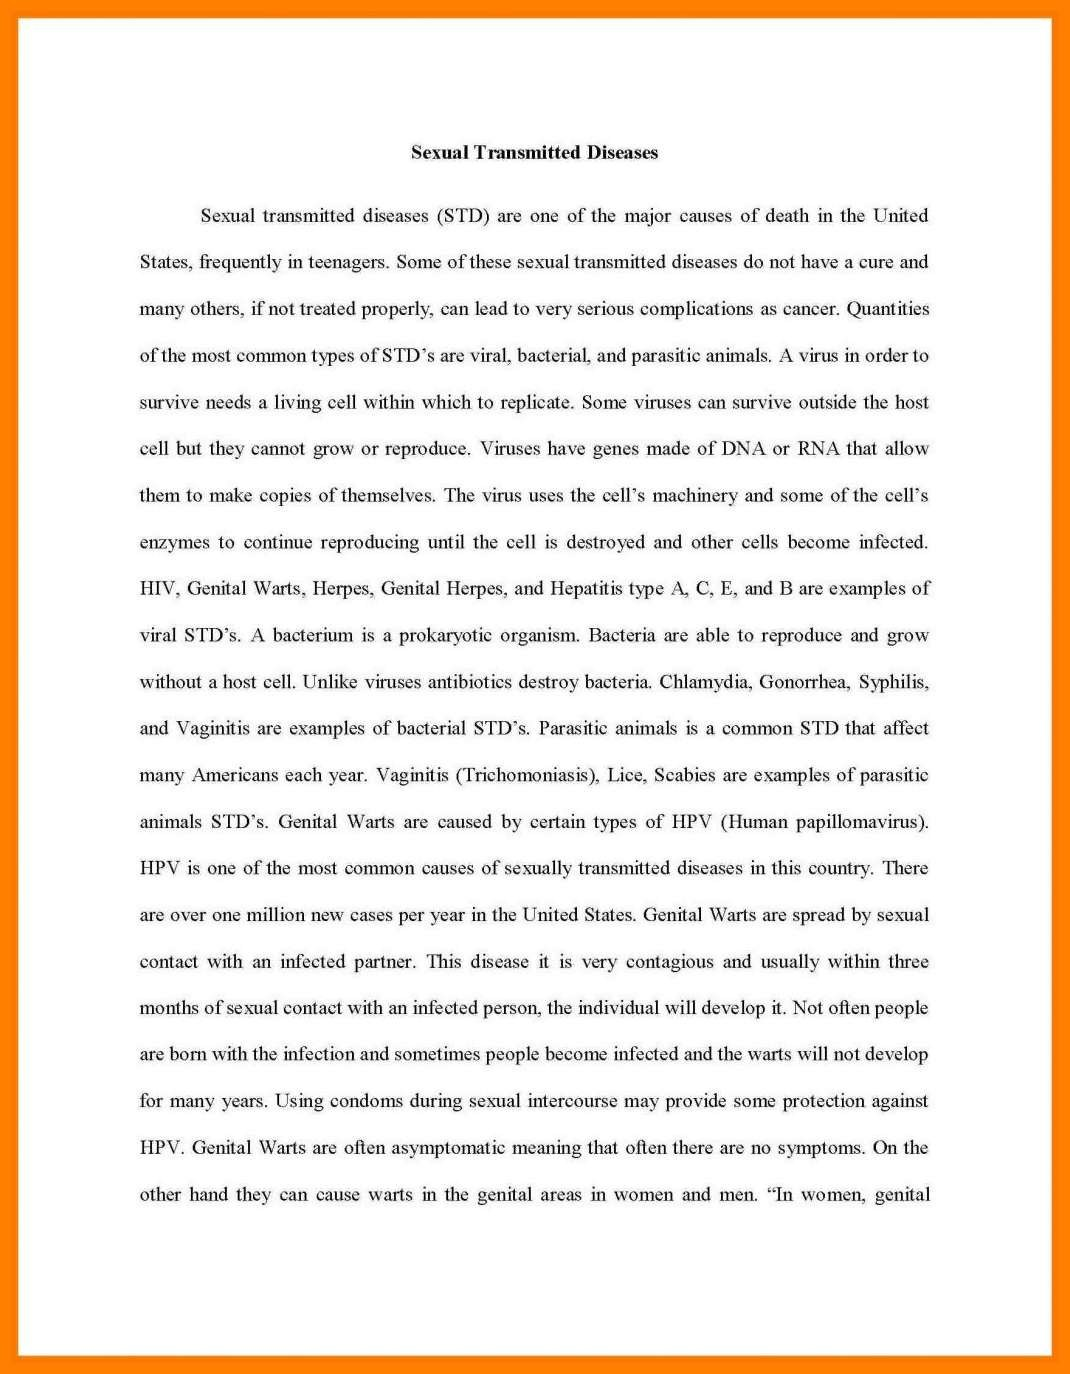 010 Apa Researchr Format Example Park Attendant Style With Table Of Conten Psychology Contents 1048x1352 Unique Research Paper Sample 2017 Mla Introduction Full